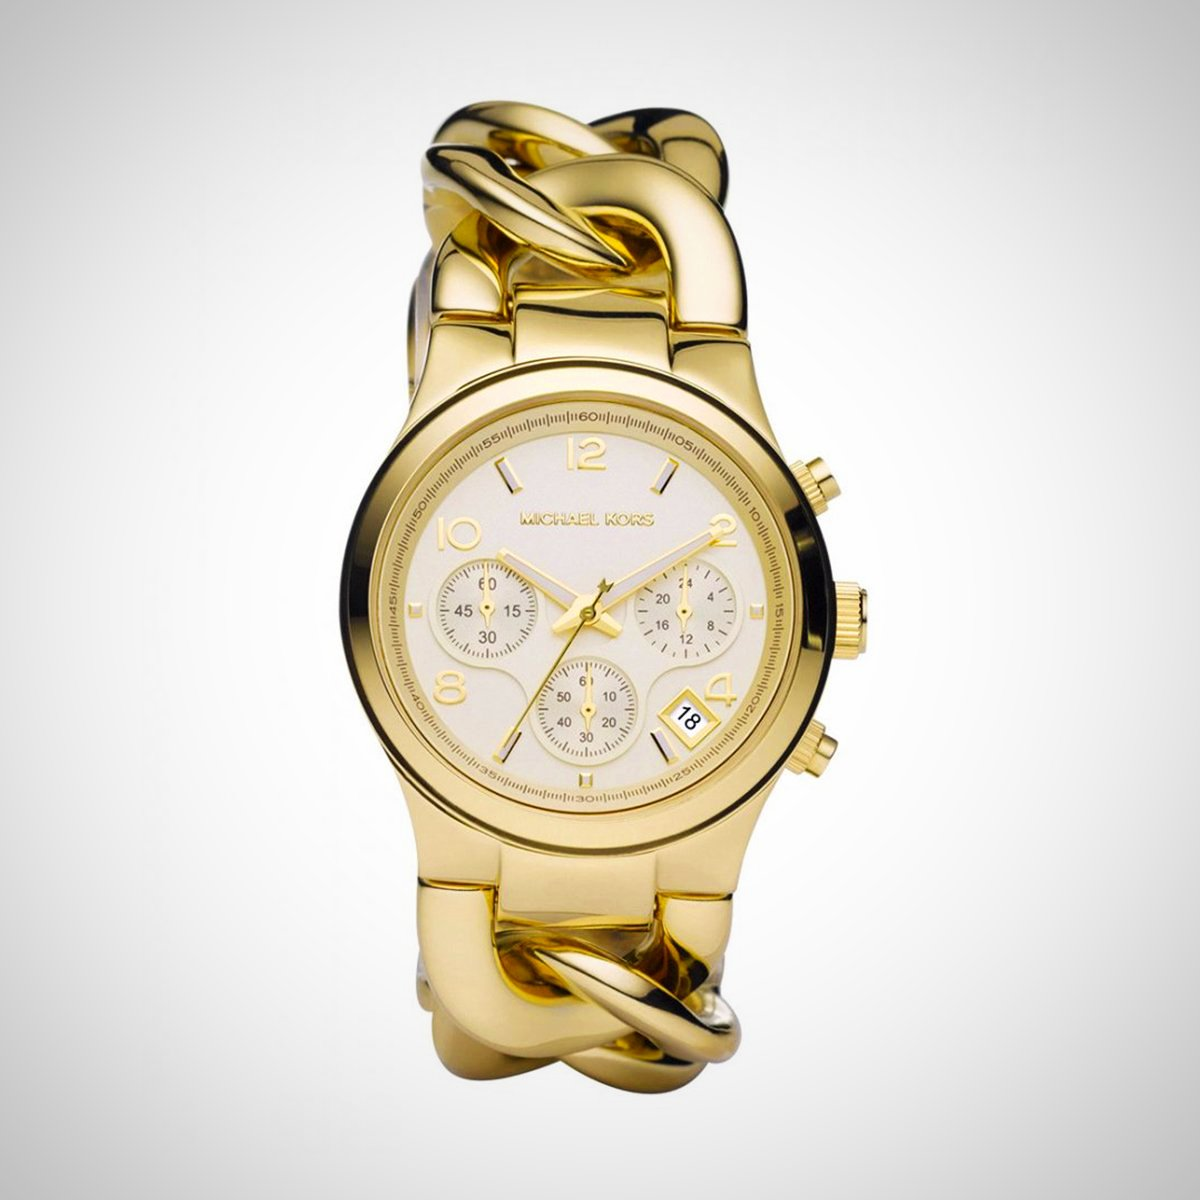 Michael Kors MK3131 Runway Twist Ladies' Chronograph Gold Watch